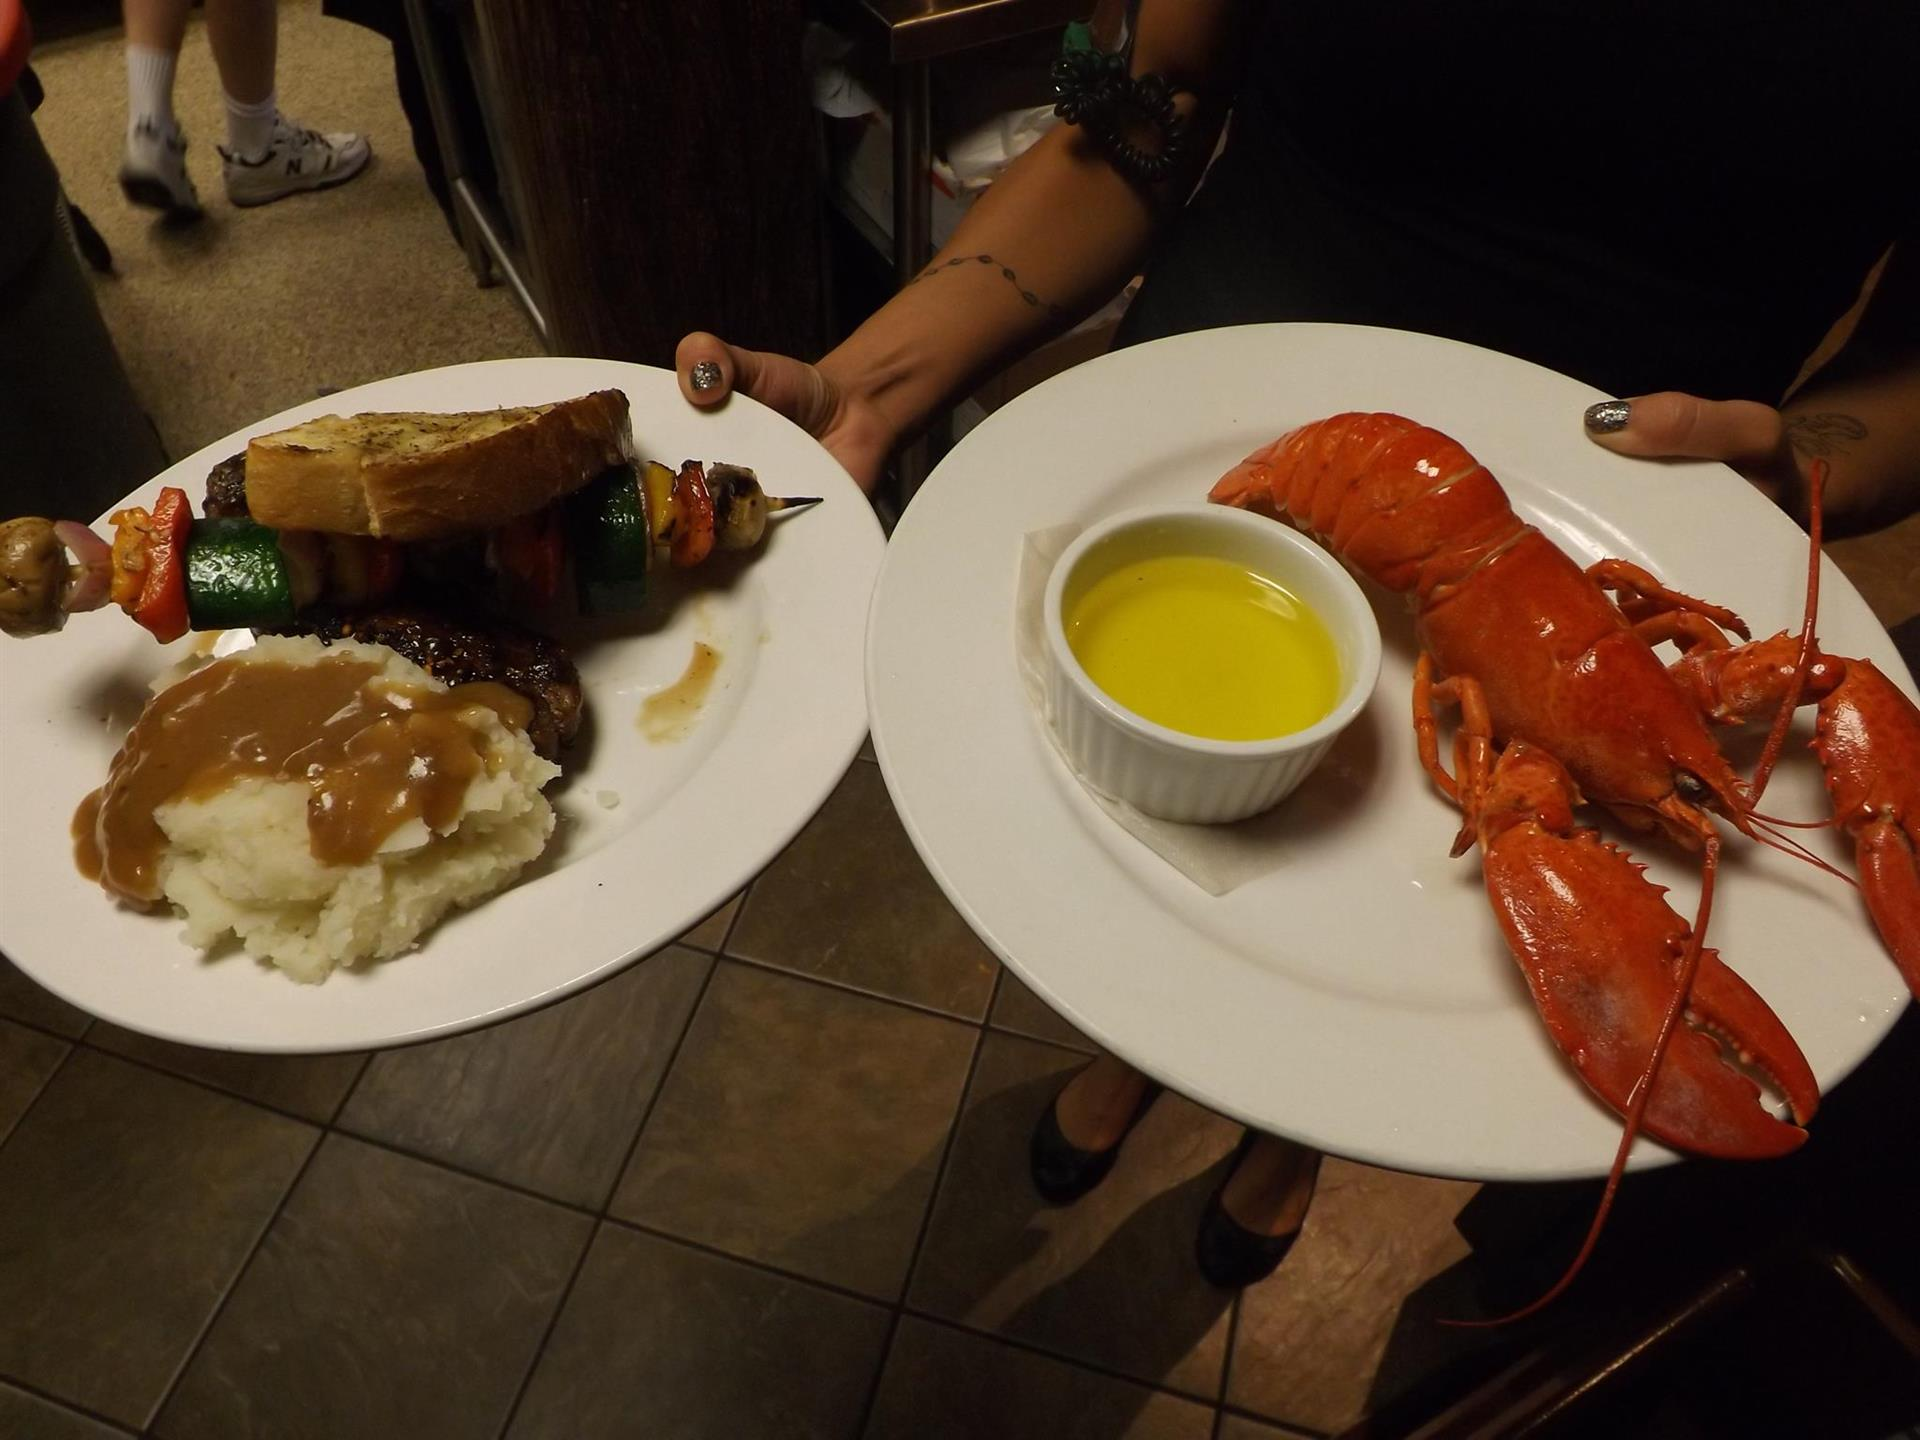 a person holding two white plates. one with mash potaatos and gravy and a shish kebab with a slice of bread. Another plate with a small cup of butter and a lobster